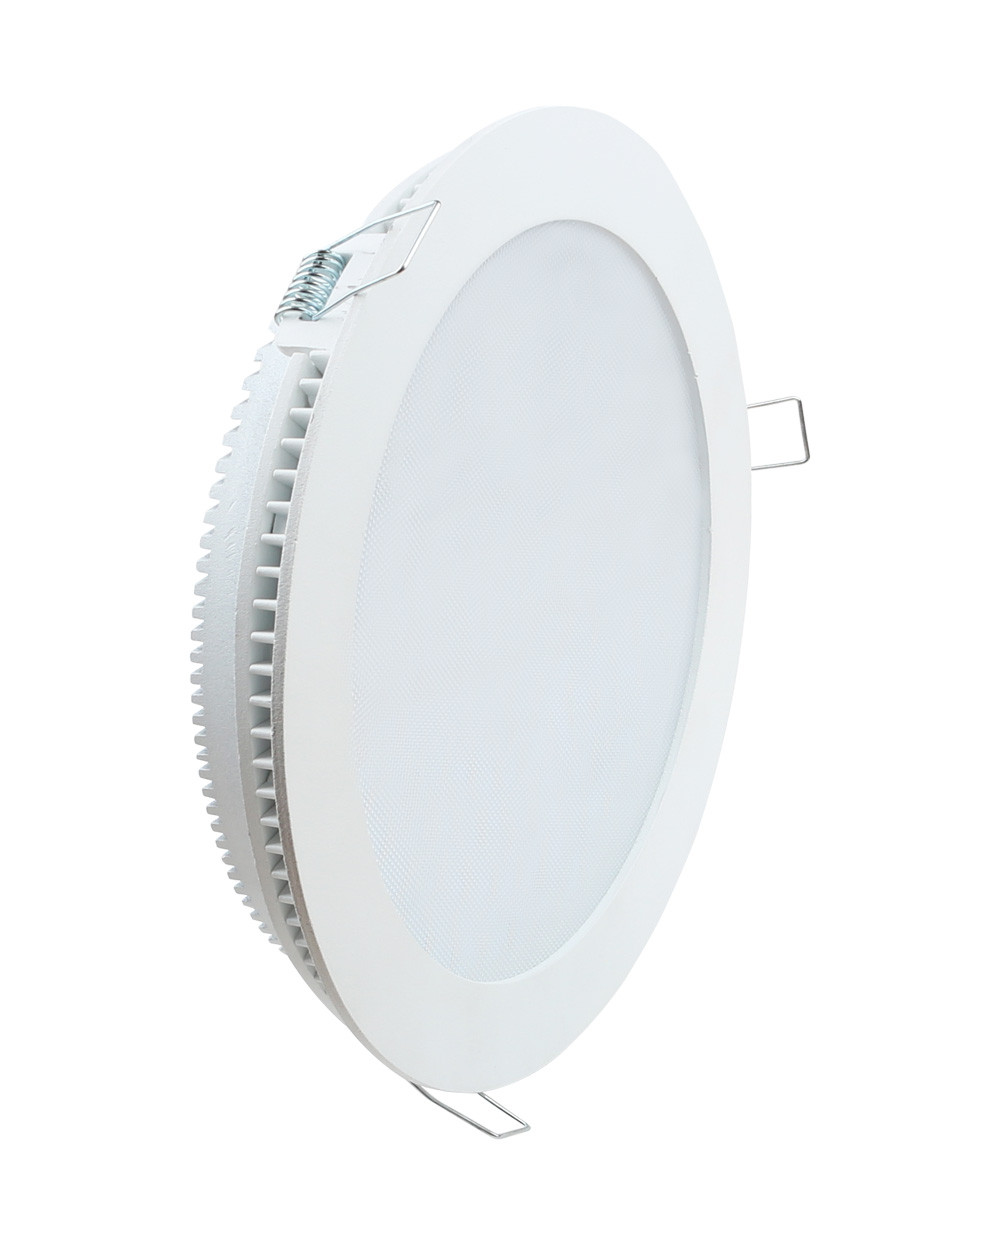 CIRCUM 35W Slim Led Downlight - AL.1048